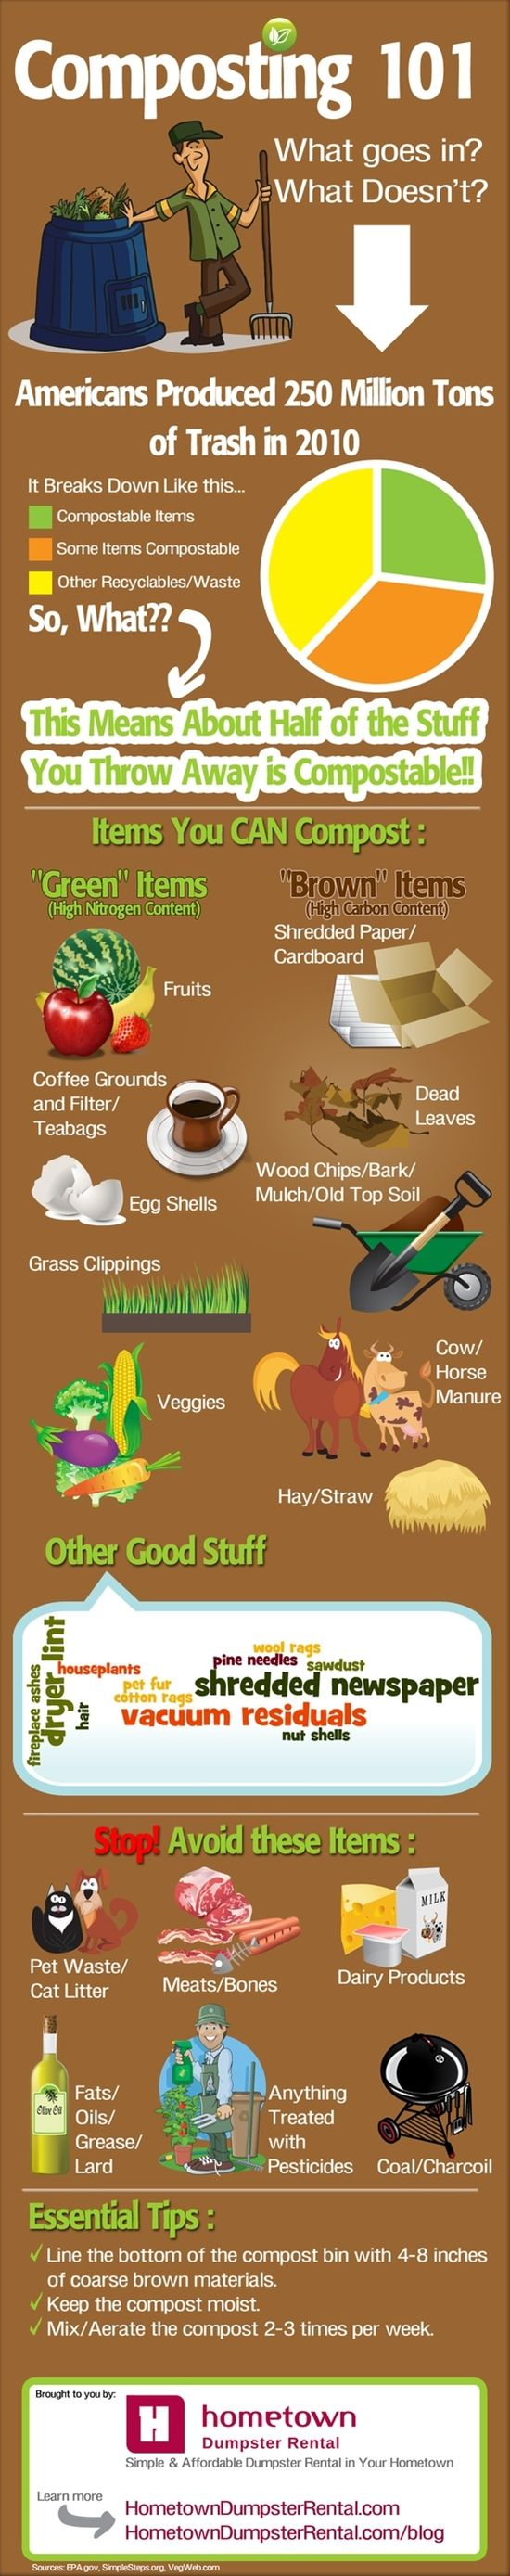 Composting- I inherited a composite bin- great, simple tips!